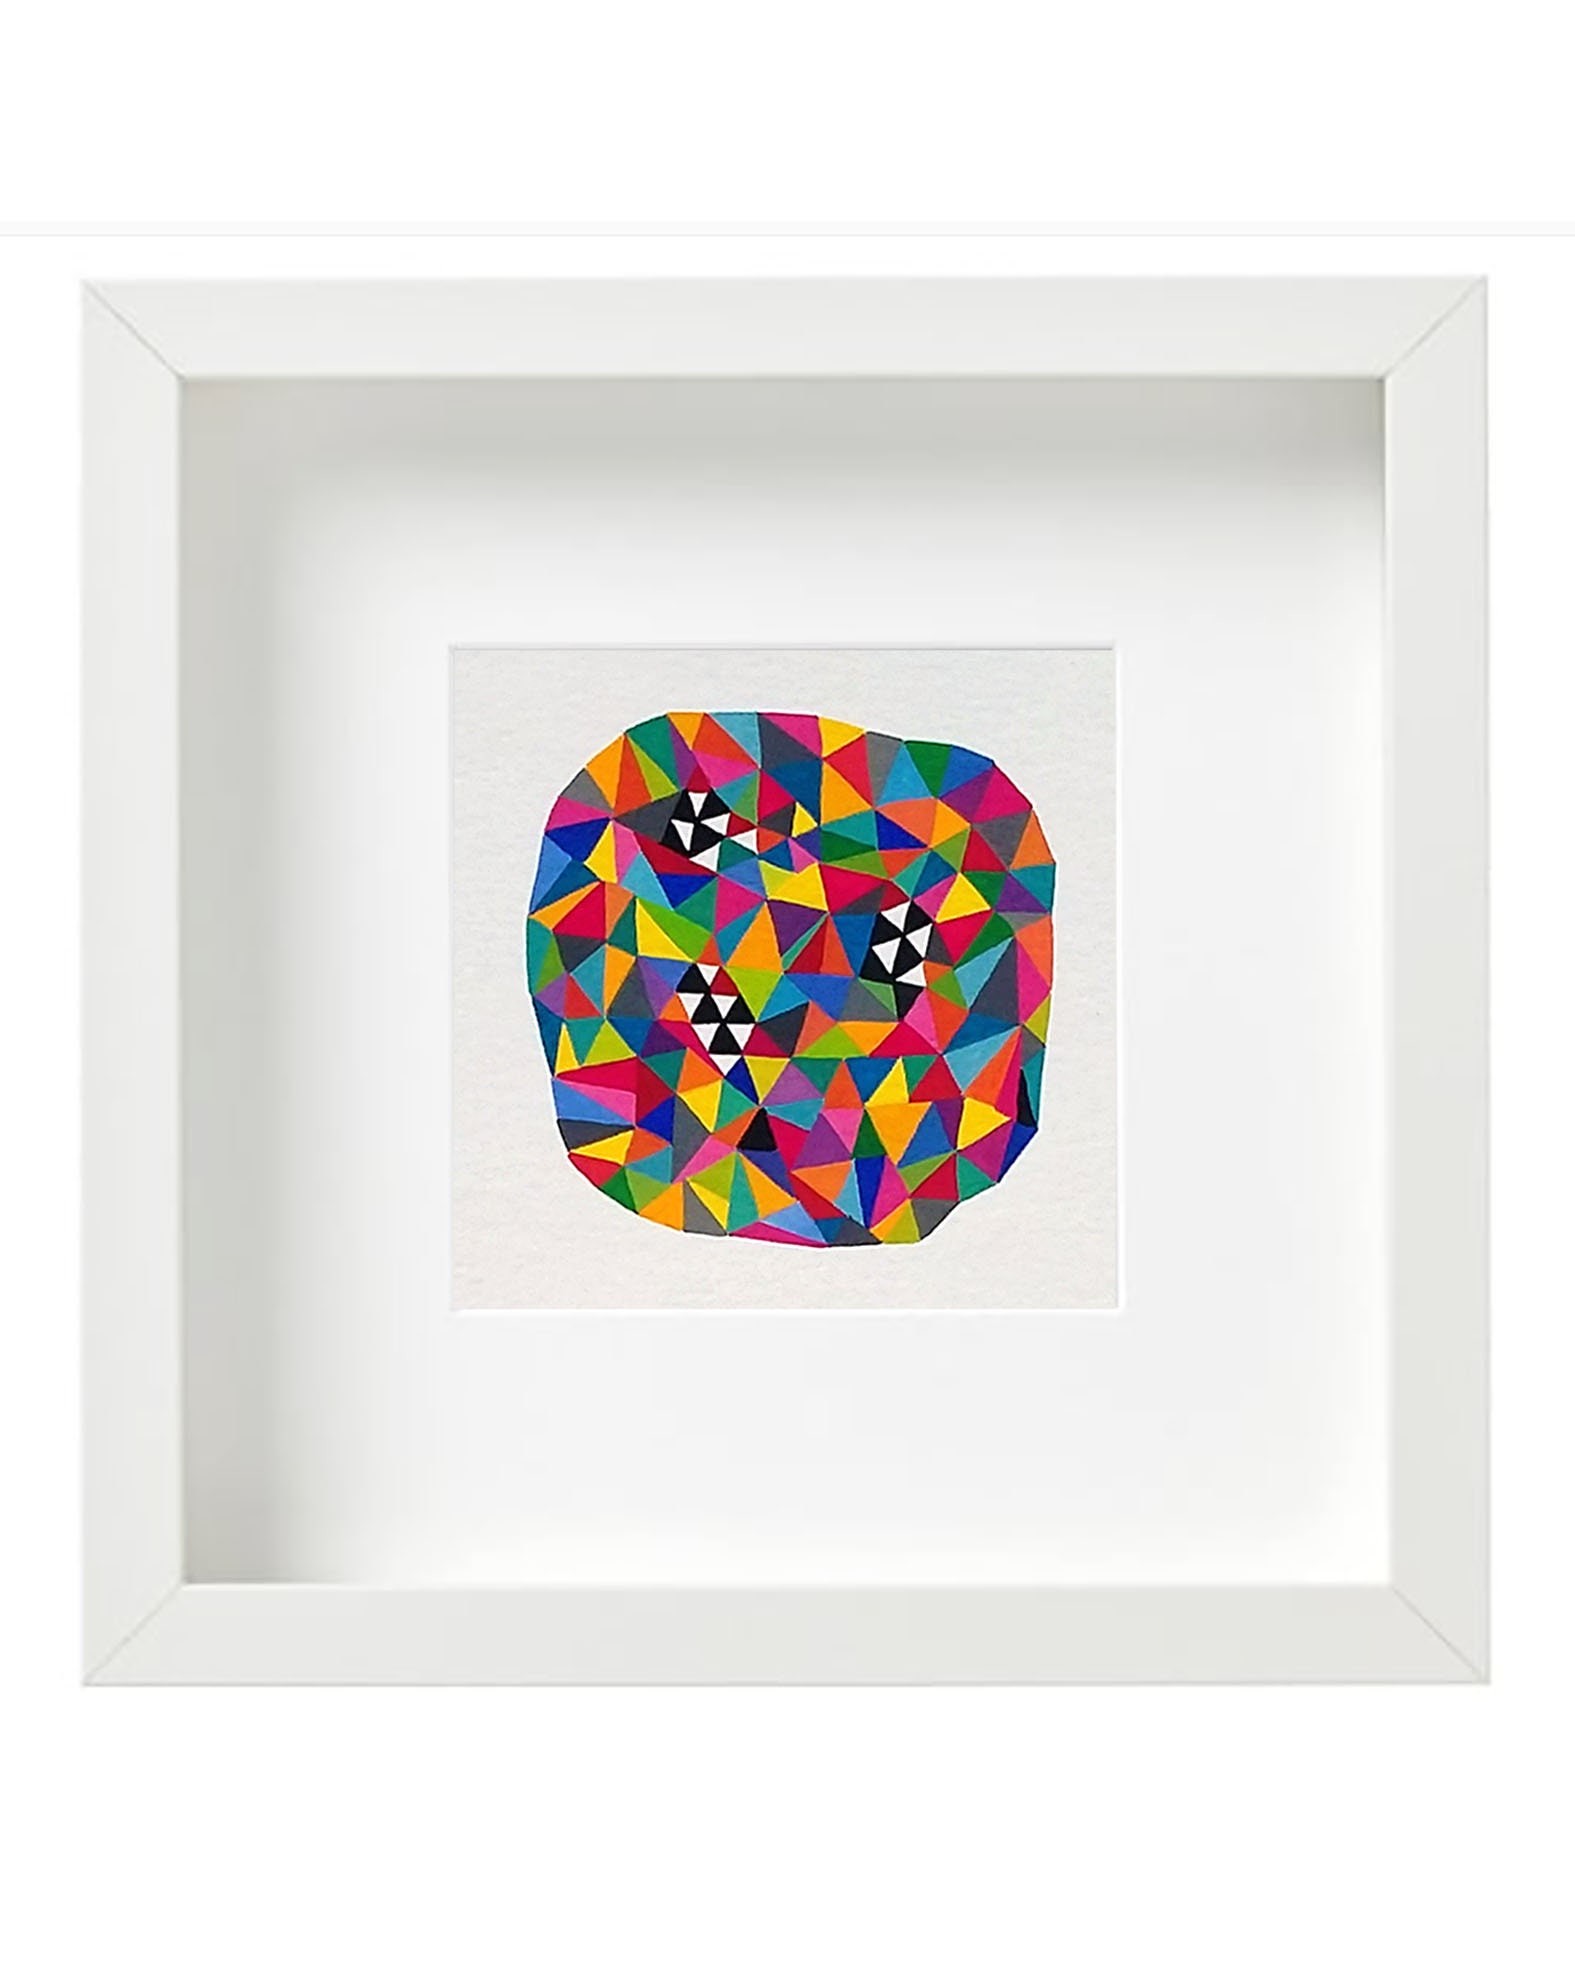 Bug_001, small geometric gouache painting on paper - product images  of